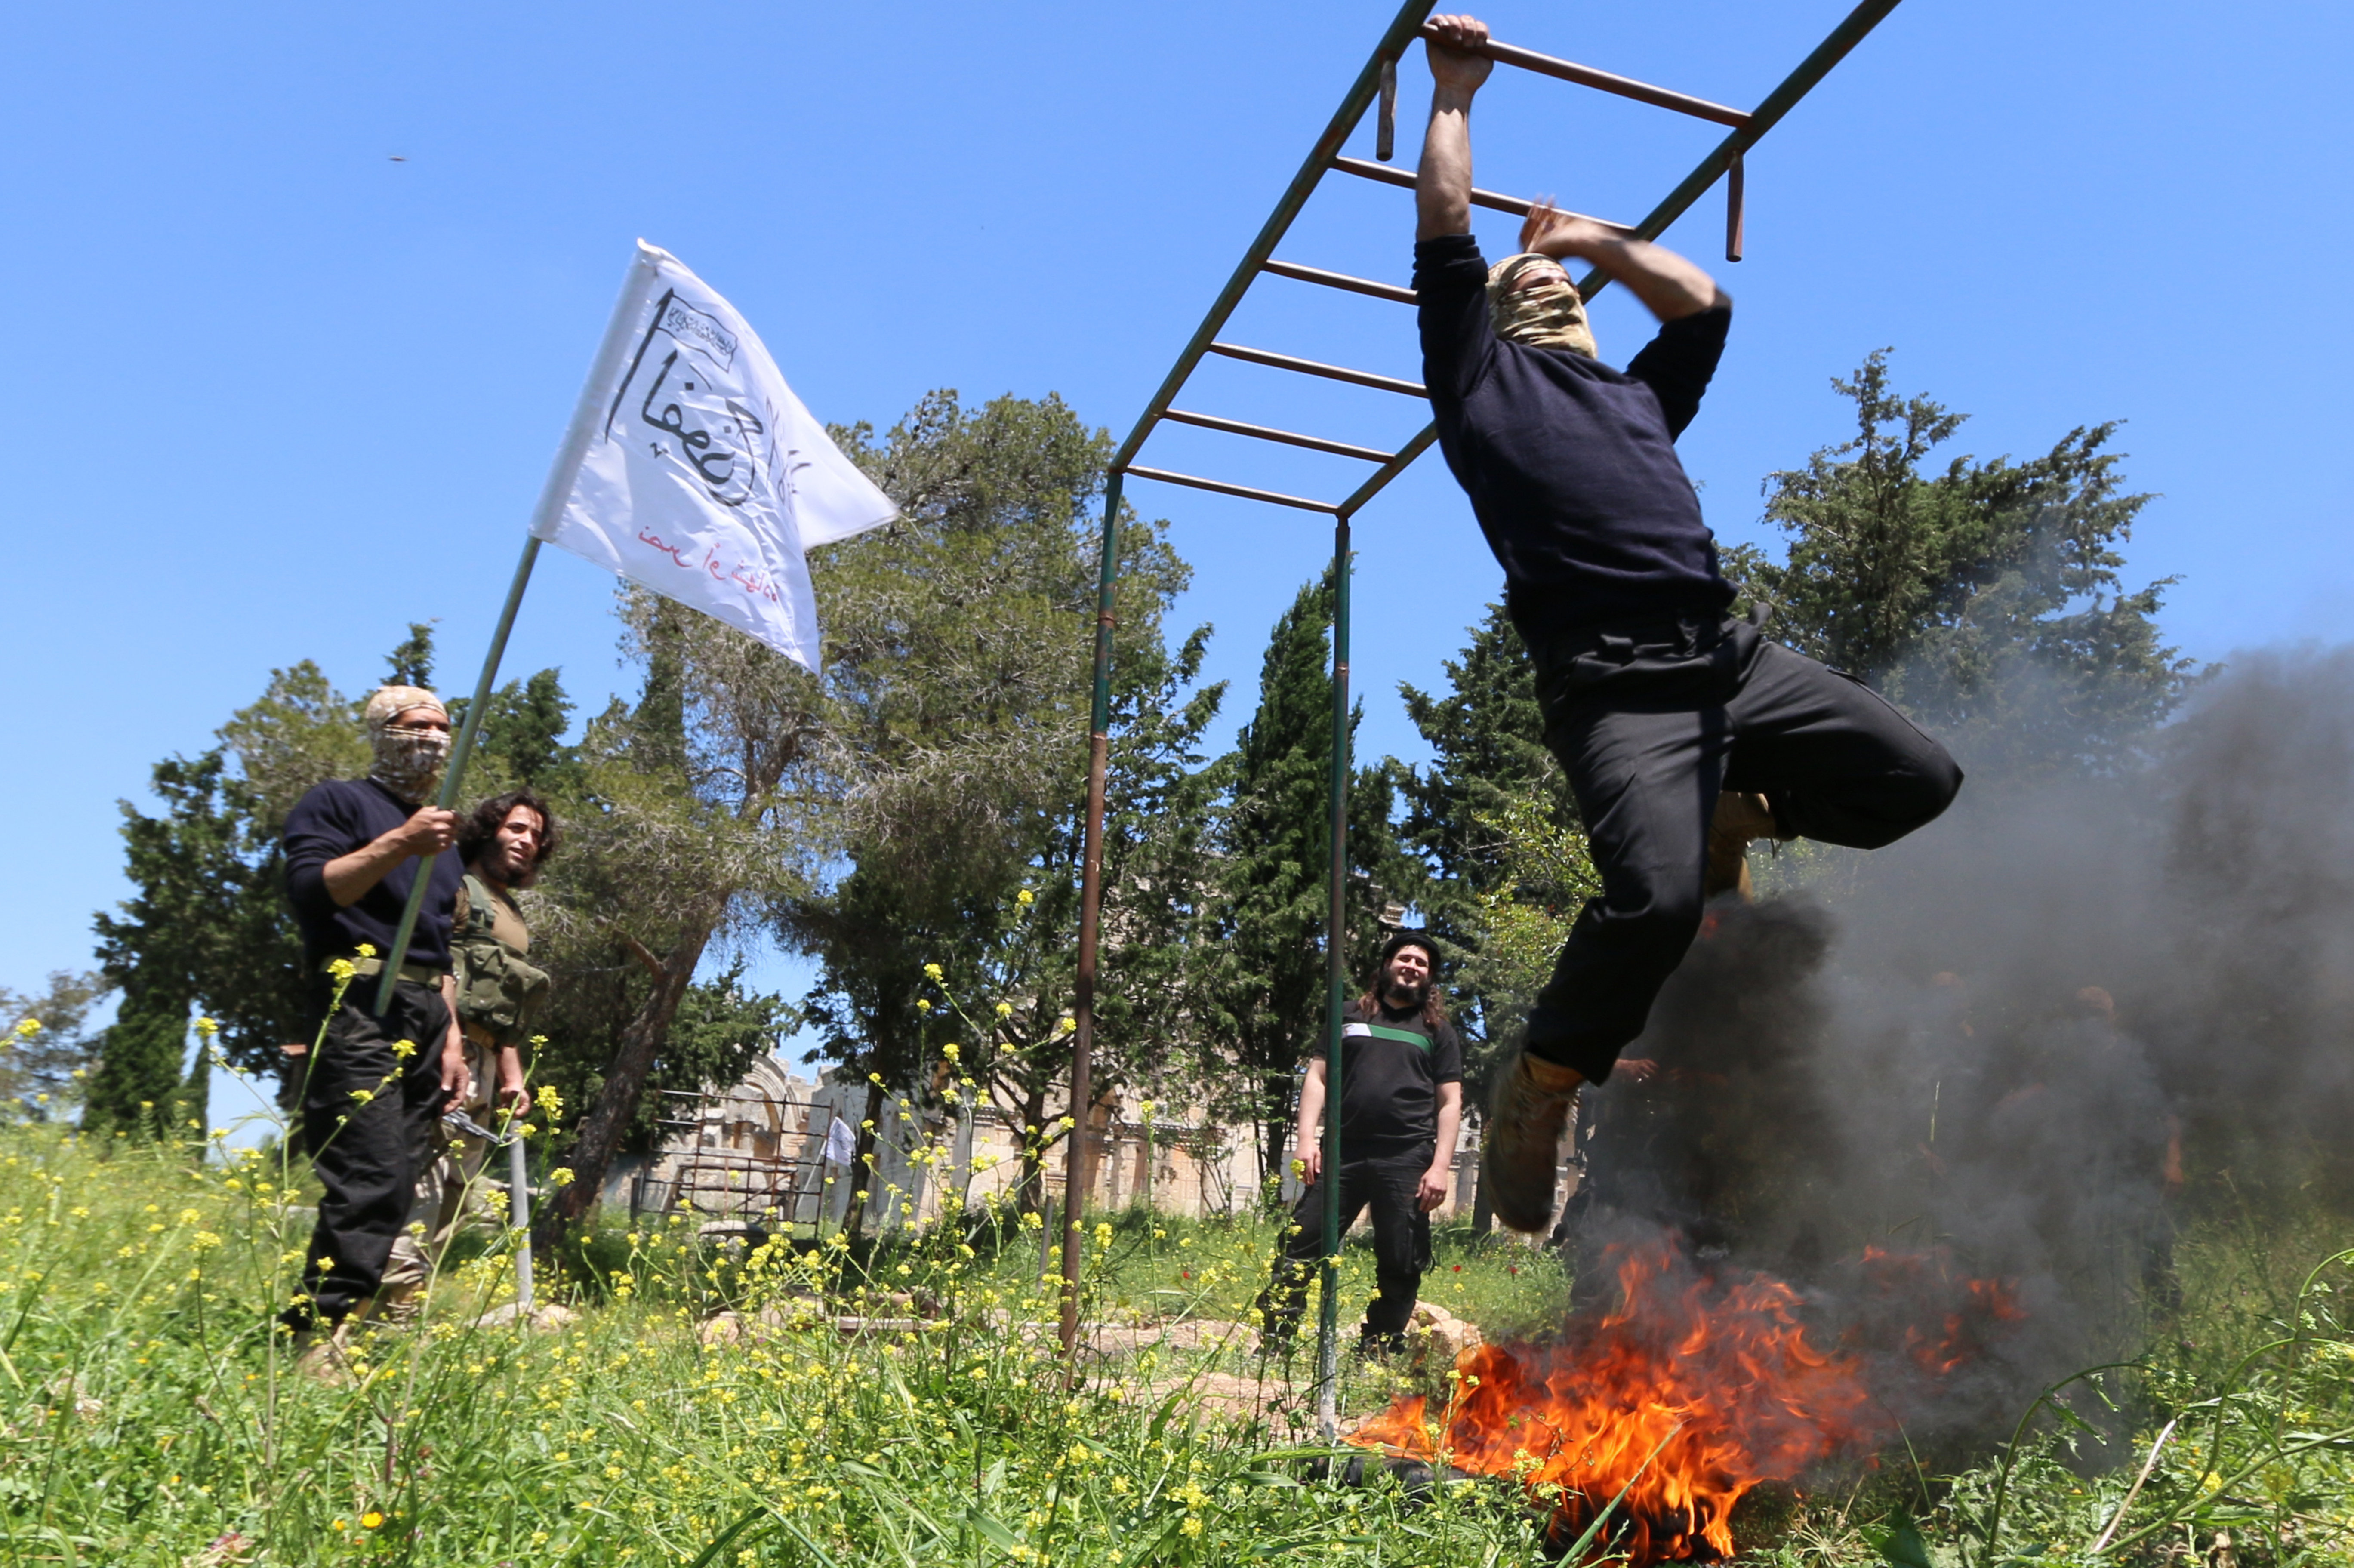 Rebel fighters from the First Battalion under the Free Syrian Army take part in a military training on May 4, 2015, in the rebel-held countryside of the northern city of Aleppo